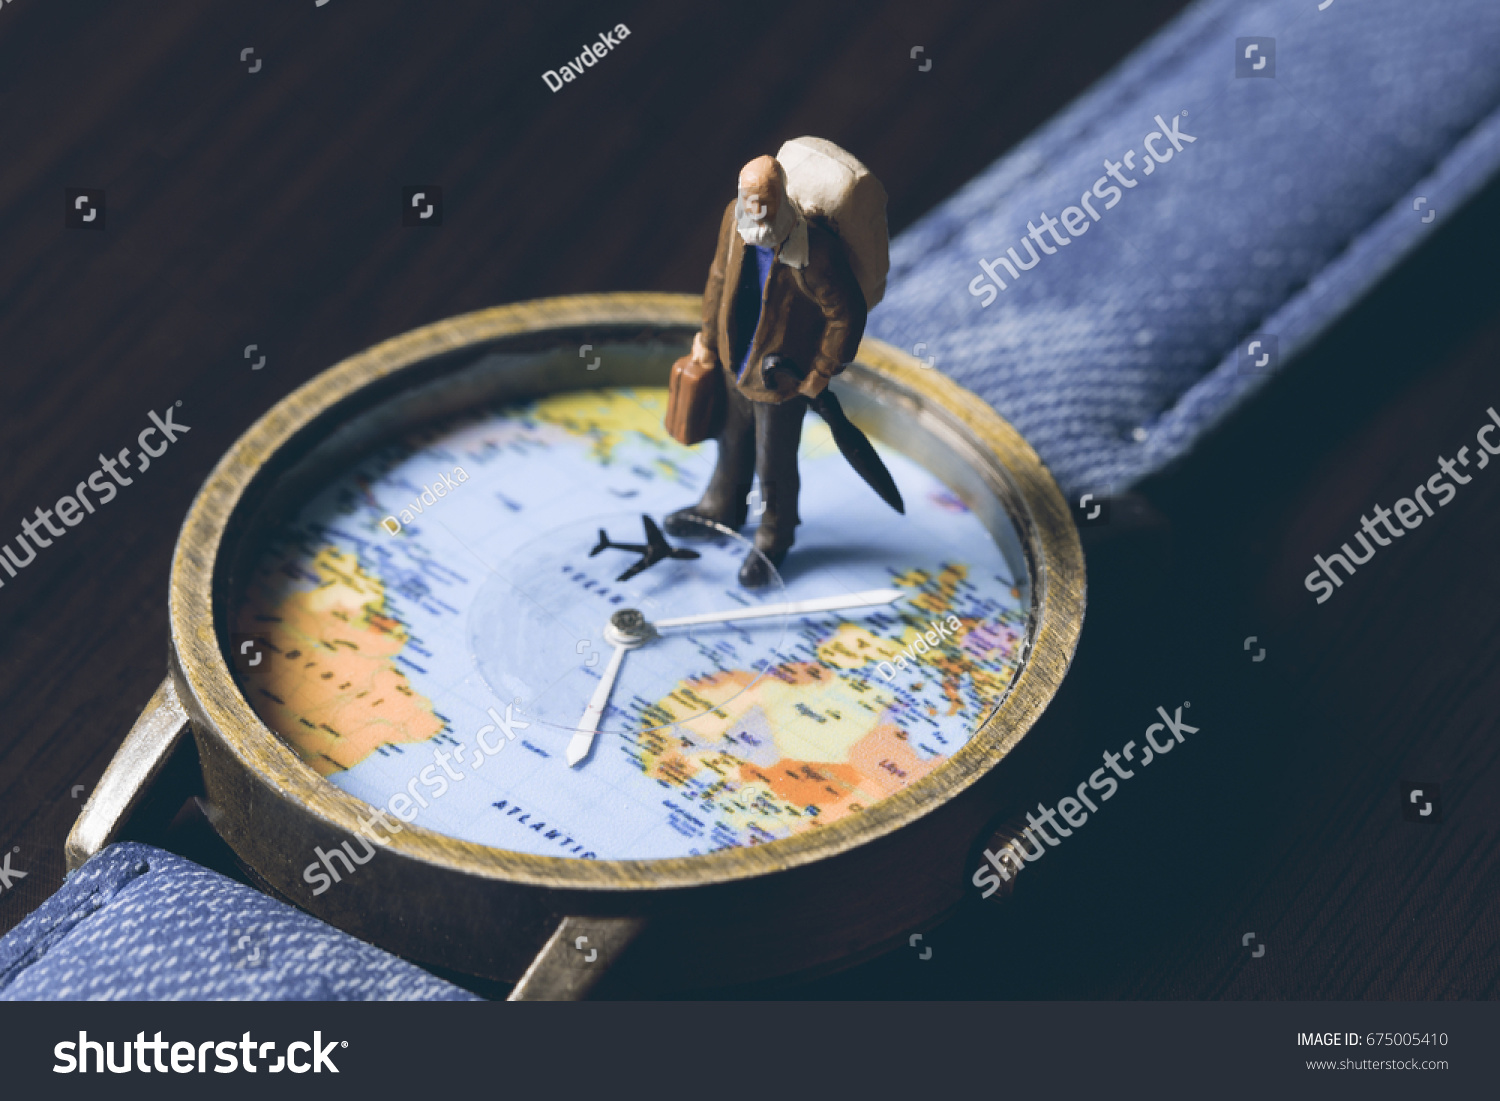 royalty map old senior travel stock image on free traveler photo banner world watches with vintage toned man